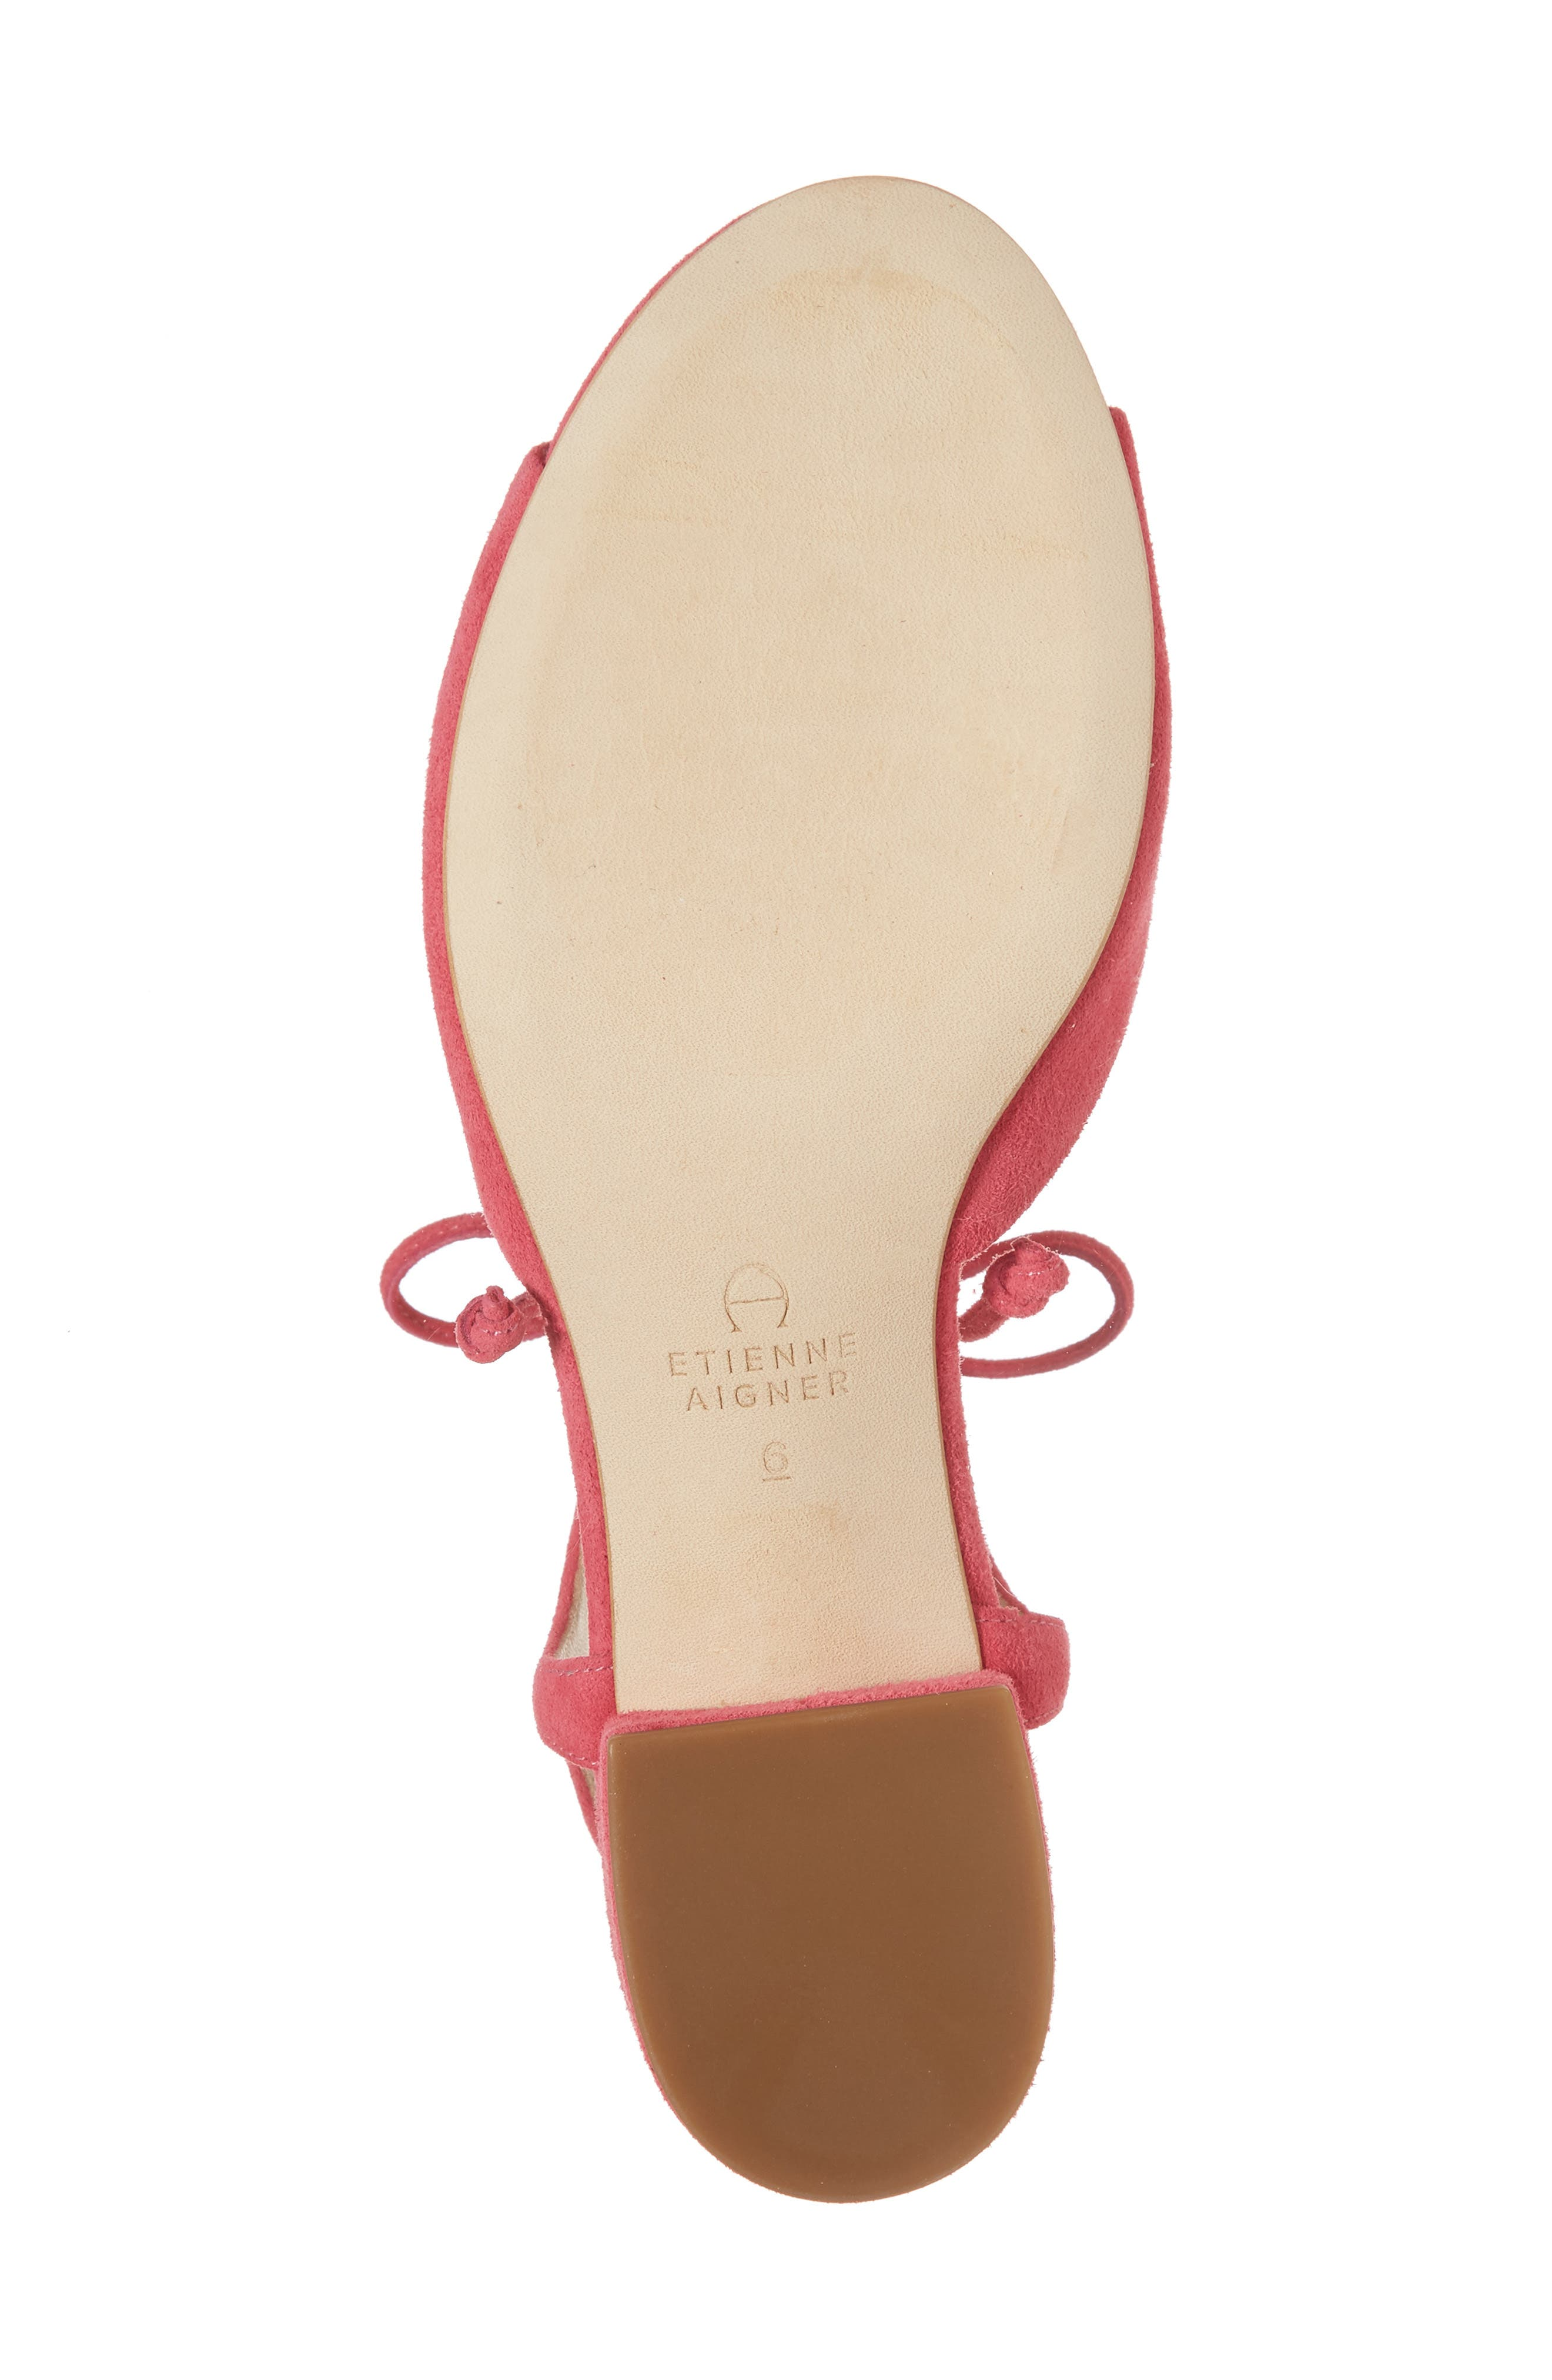 Belize Strappy Sandal,                             Alternate thumbnail 6, color,                             Peony Suede